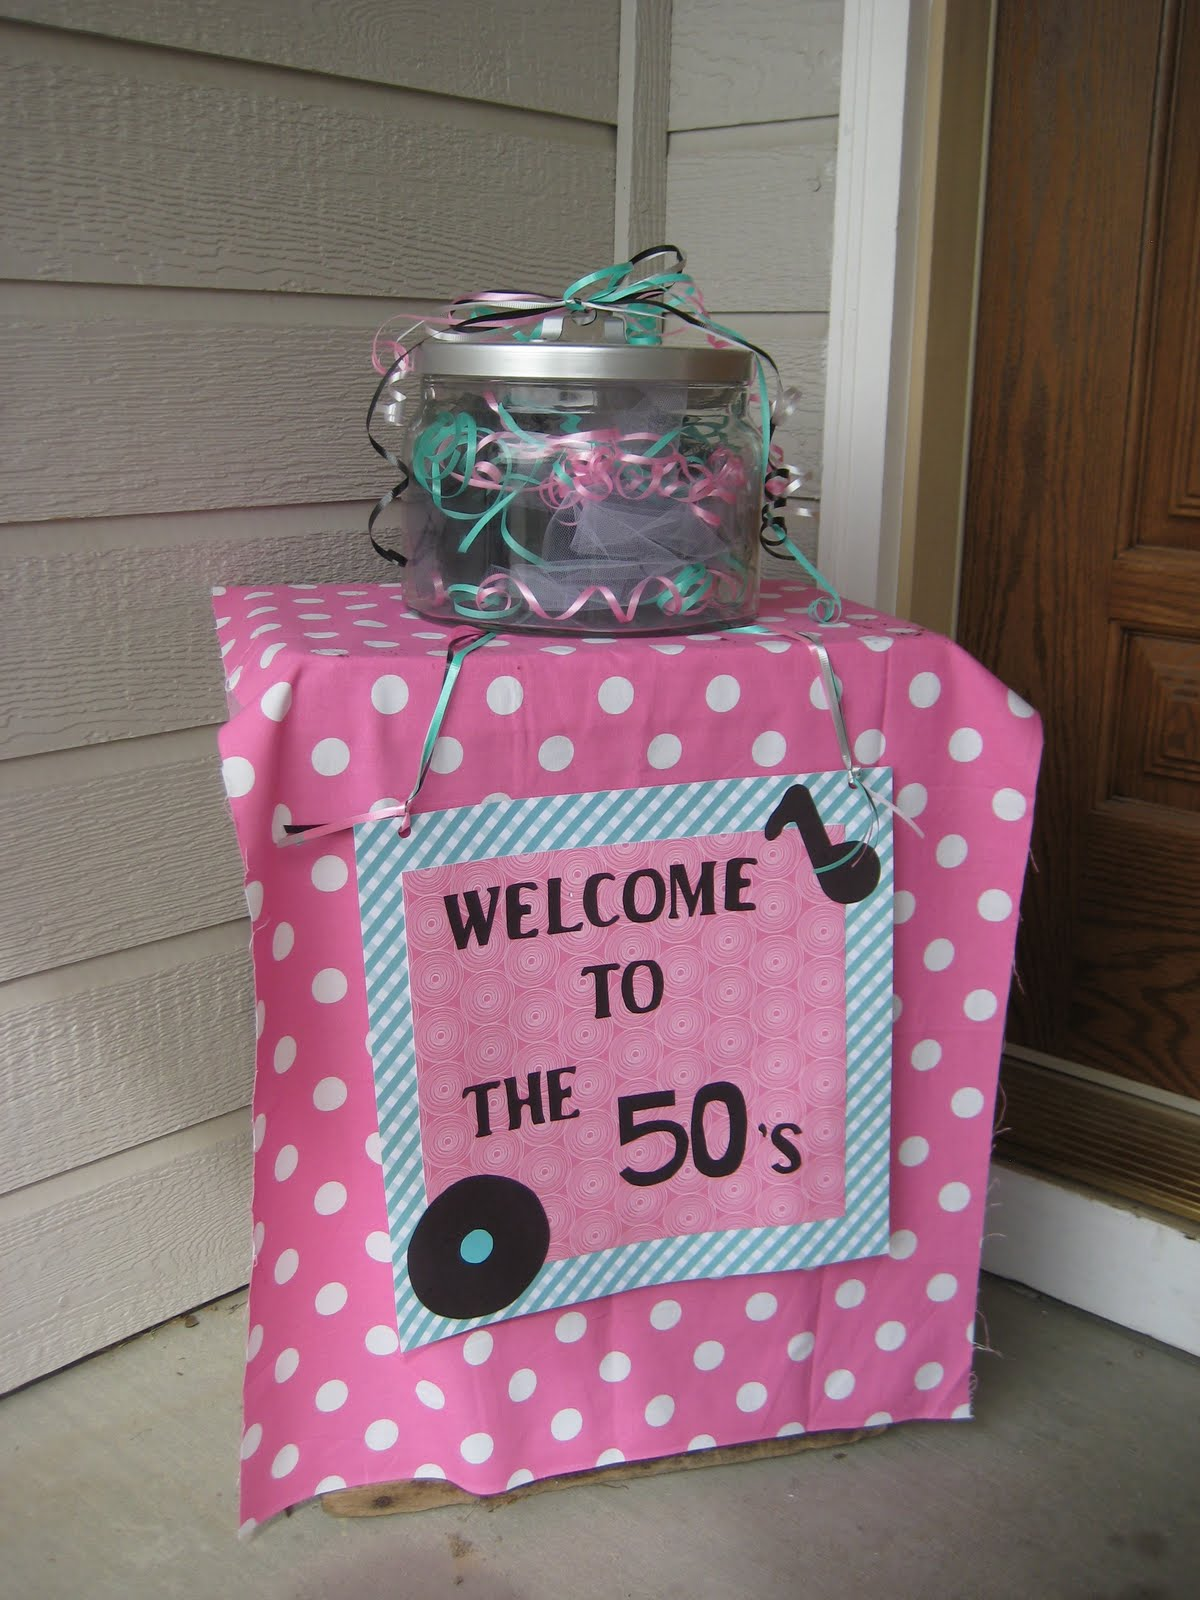 Doodles And Doilies: 50's Birthday Party